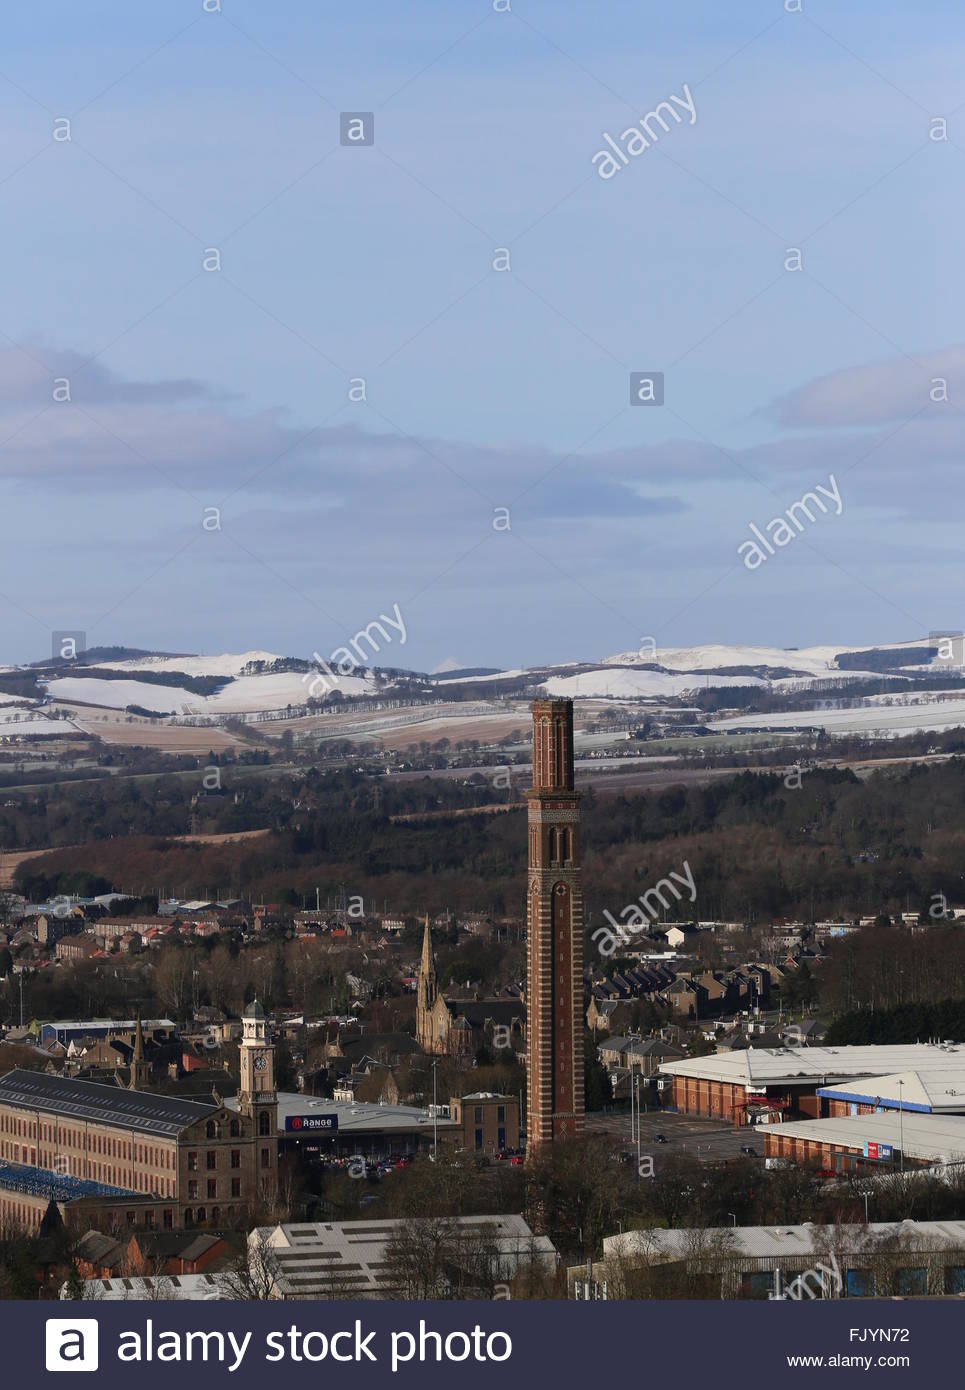 Cox's stack chimney and distant peak of Schiehallion viewed from Dundee Law Scotland  February 2016 - Stock Image